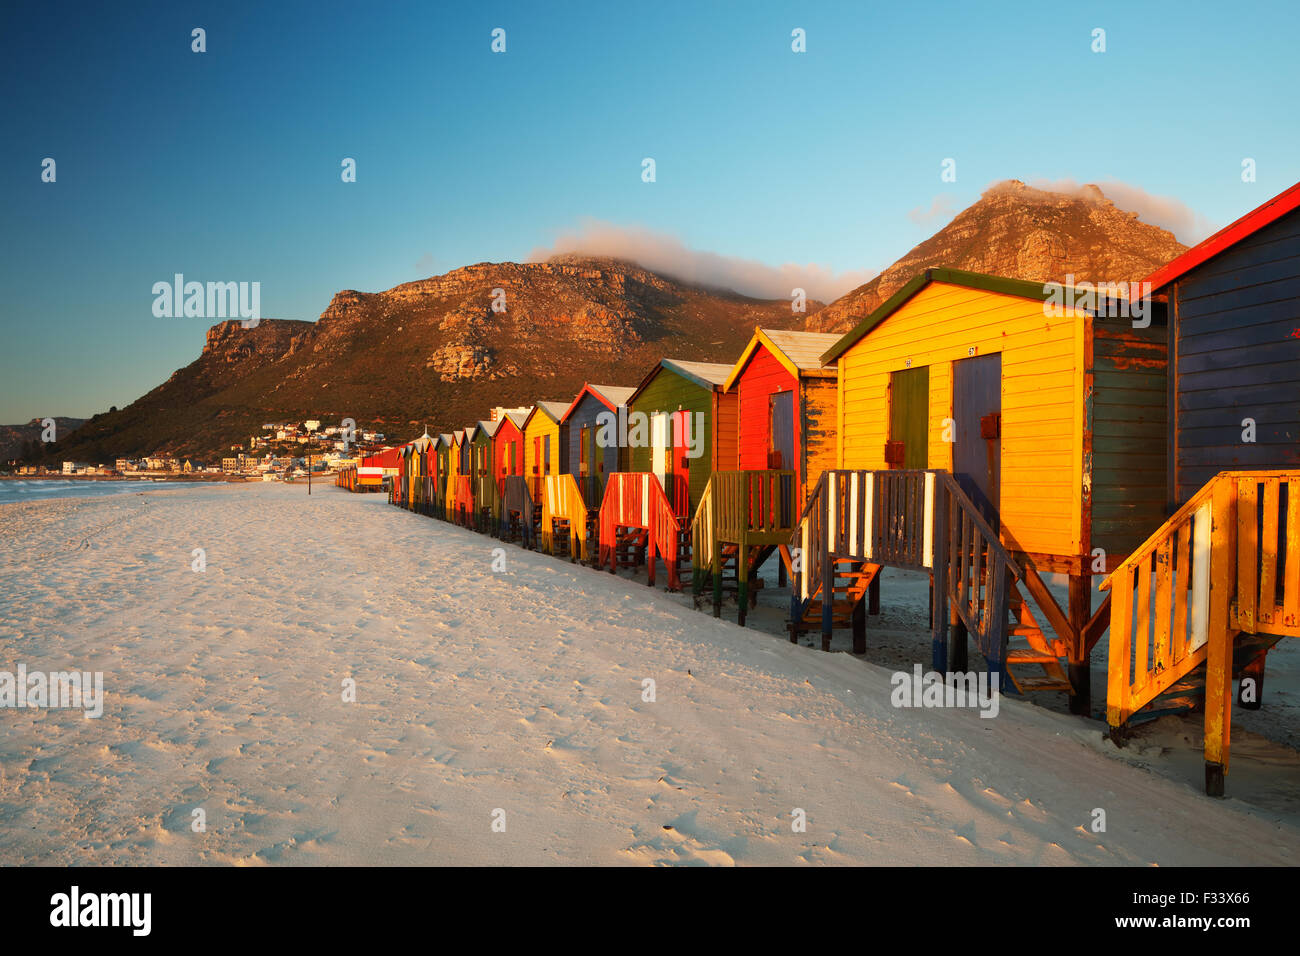 Cabines de plage sur Muizenberg Beach, Cape Town, Afrique du Sud Photo Stock